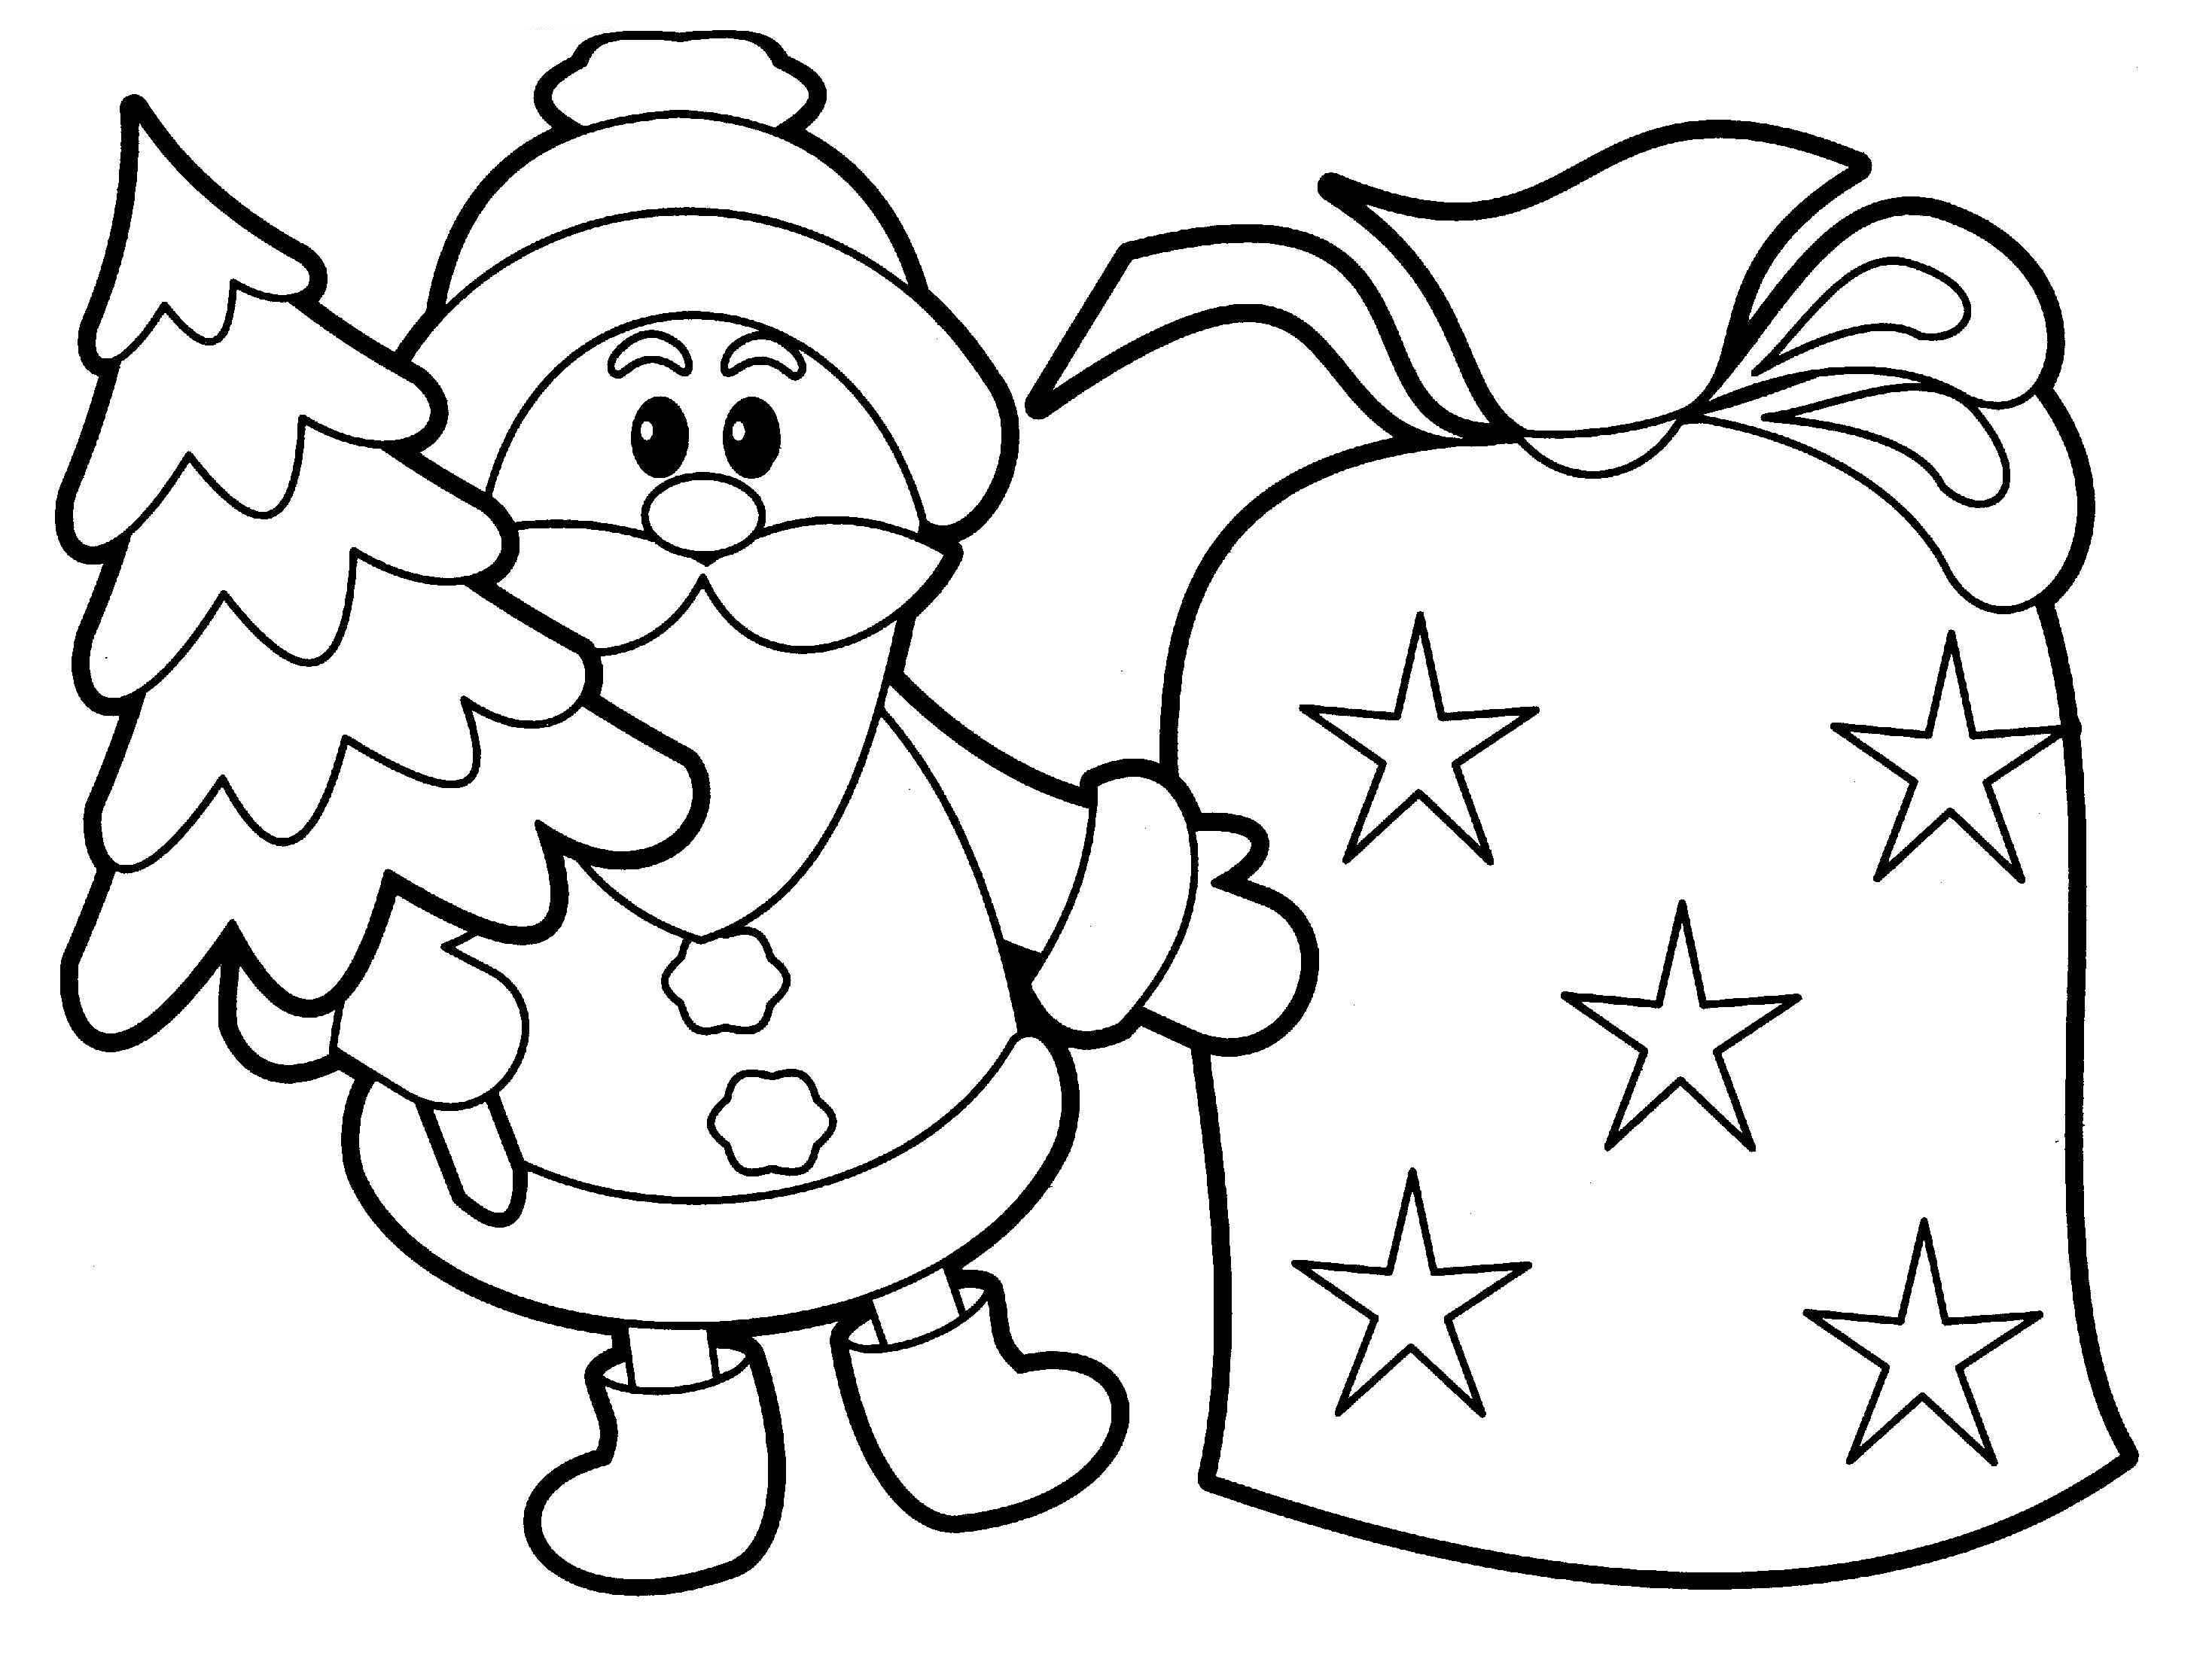 Coloring pages for christmas - Merry Christmas Coloring Pages Printable Christmas Tree Coloring